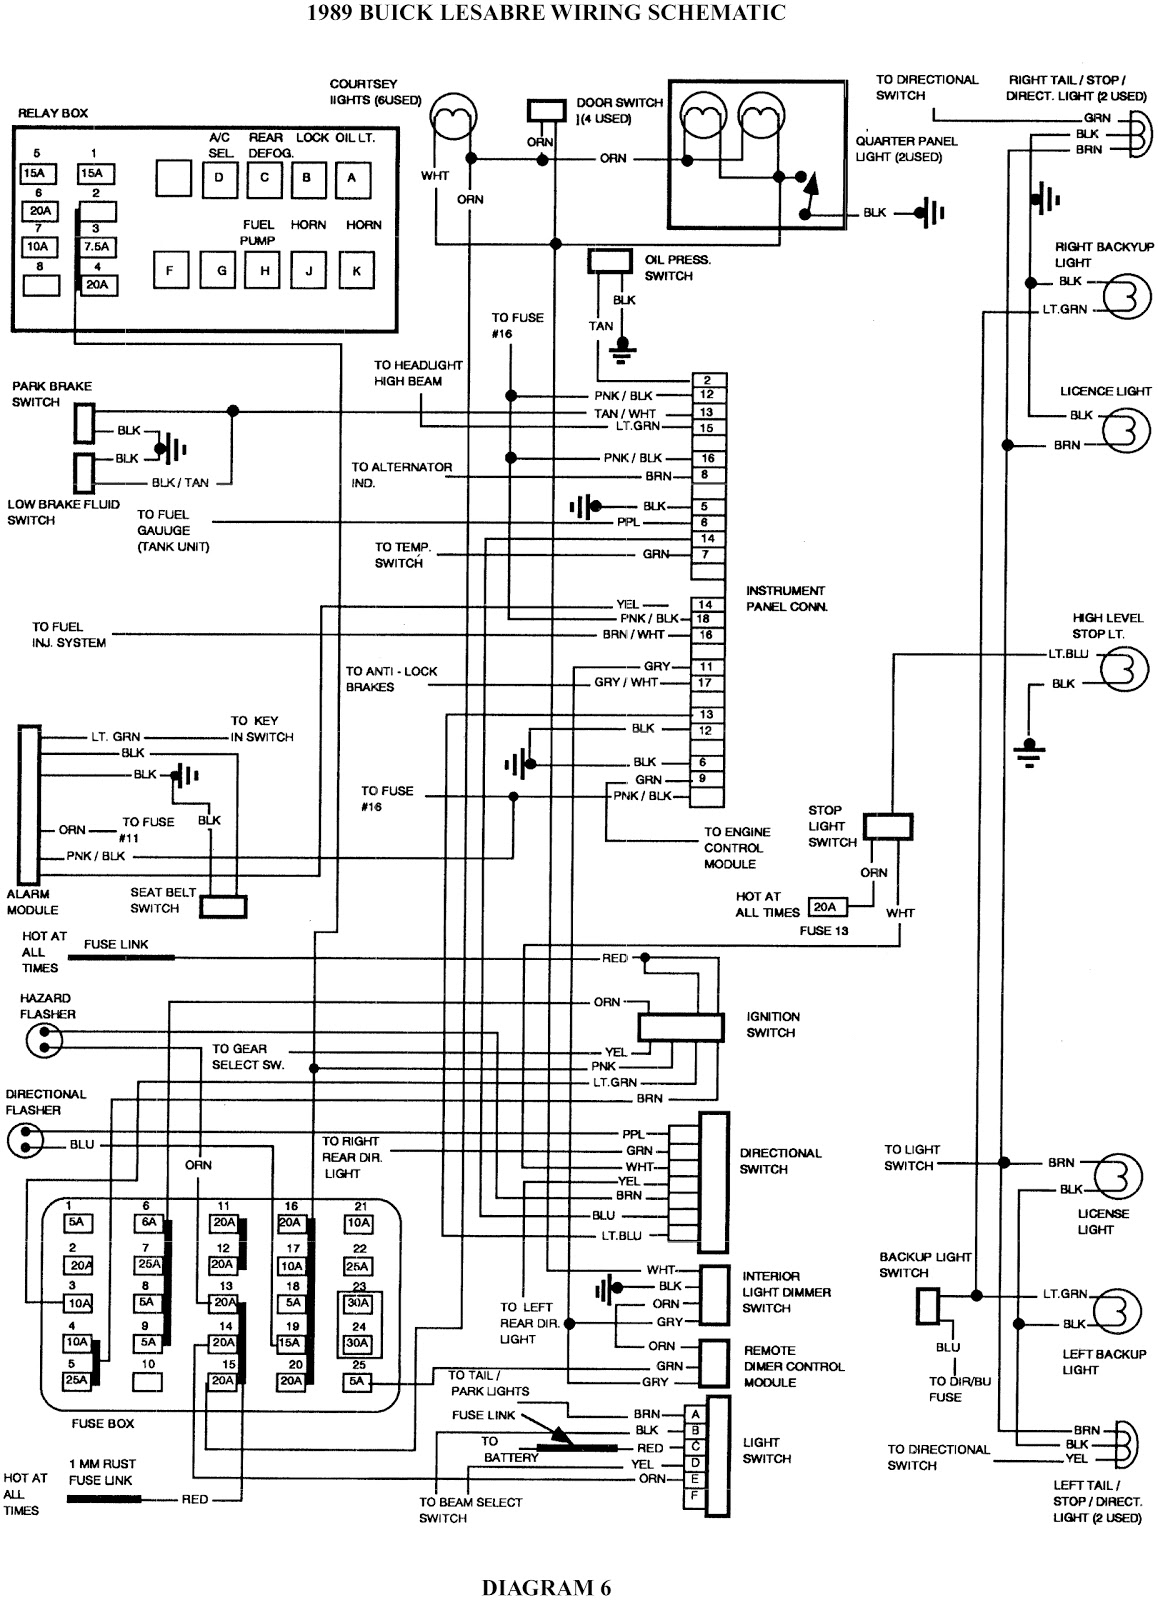 1989 Buick Lesabre Wiring Schematic on 89 firebird fuse box diagram